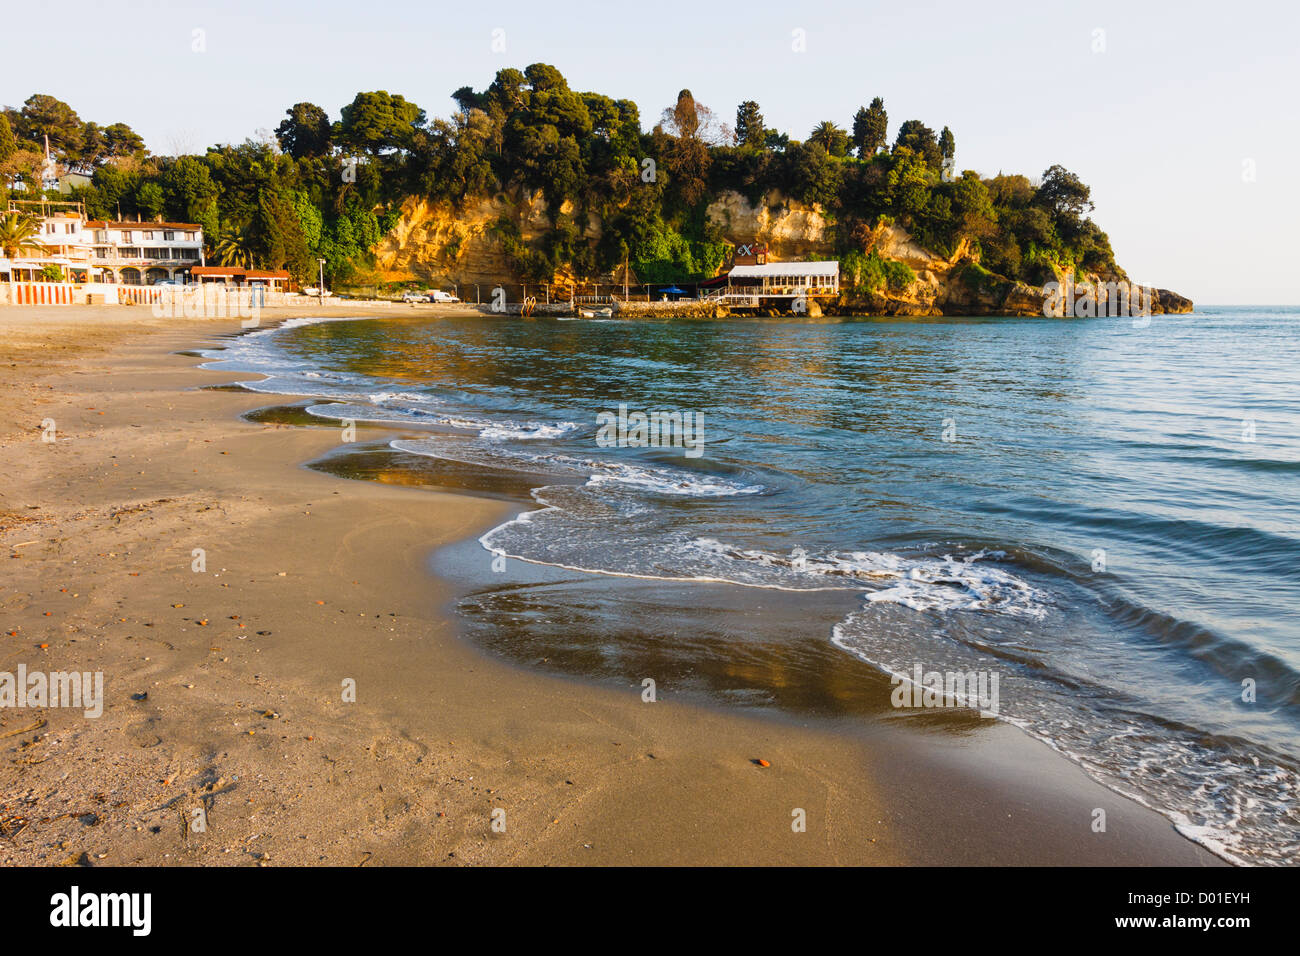 Mala plaza beach in Ulcinj, Montenegro - Stock Image